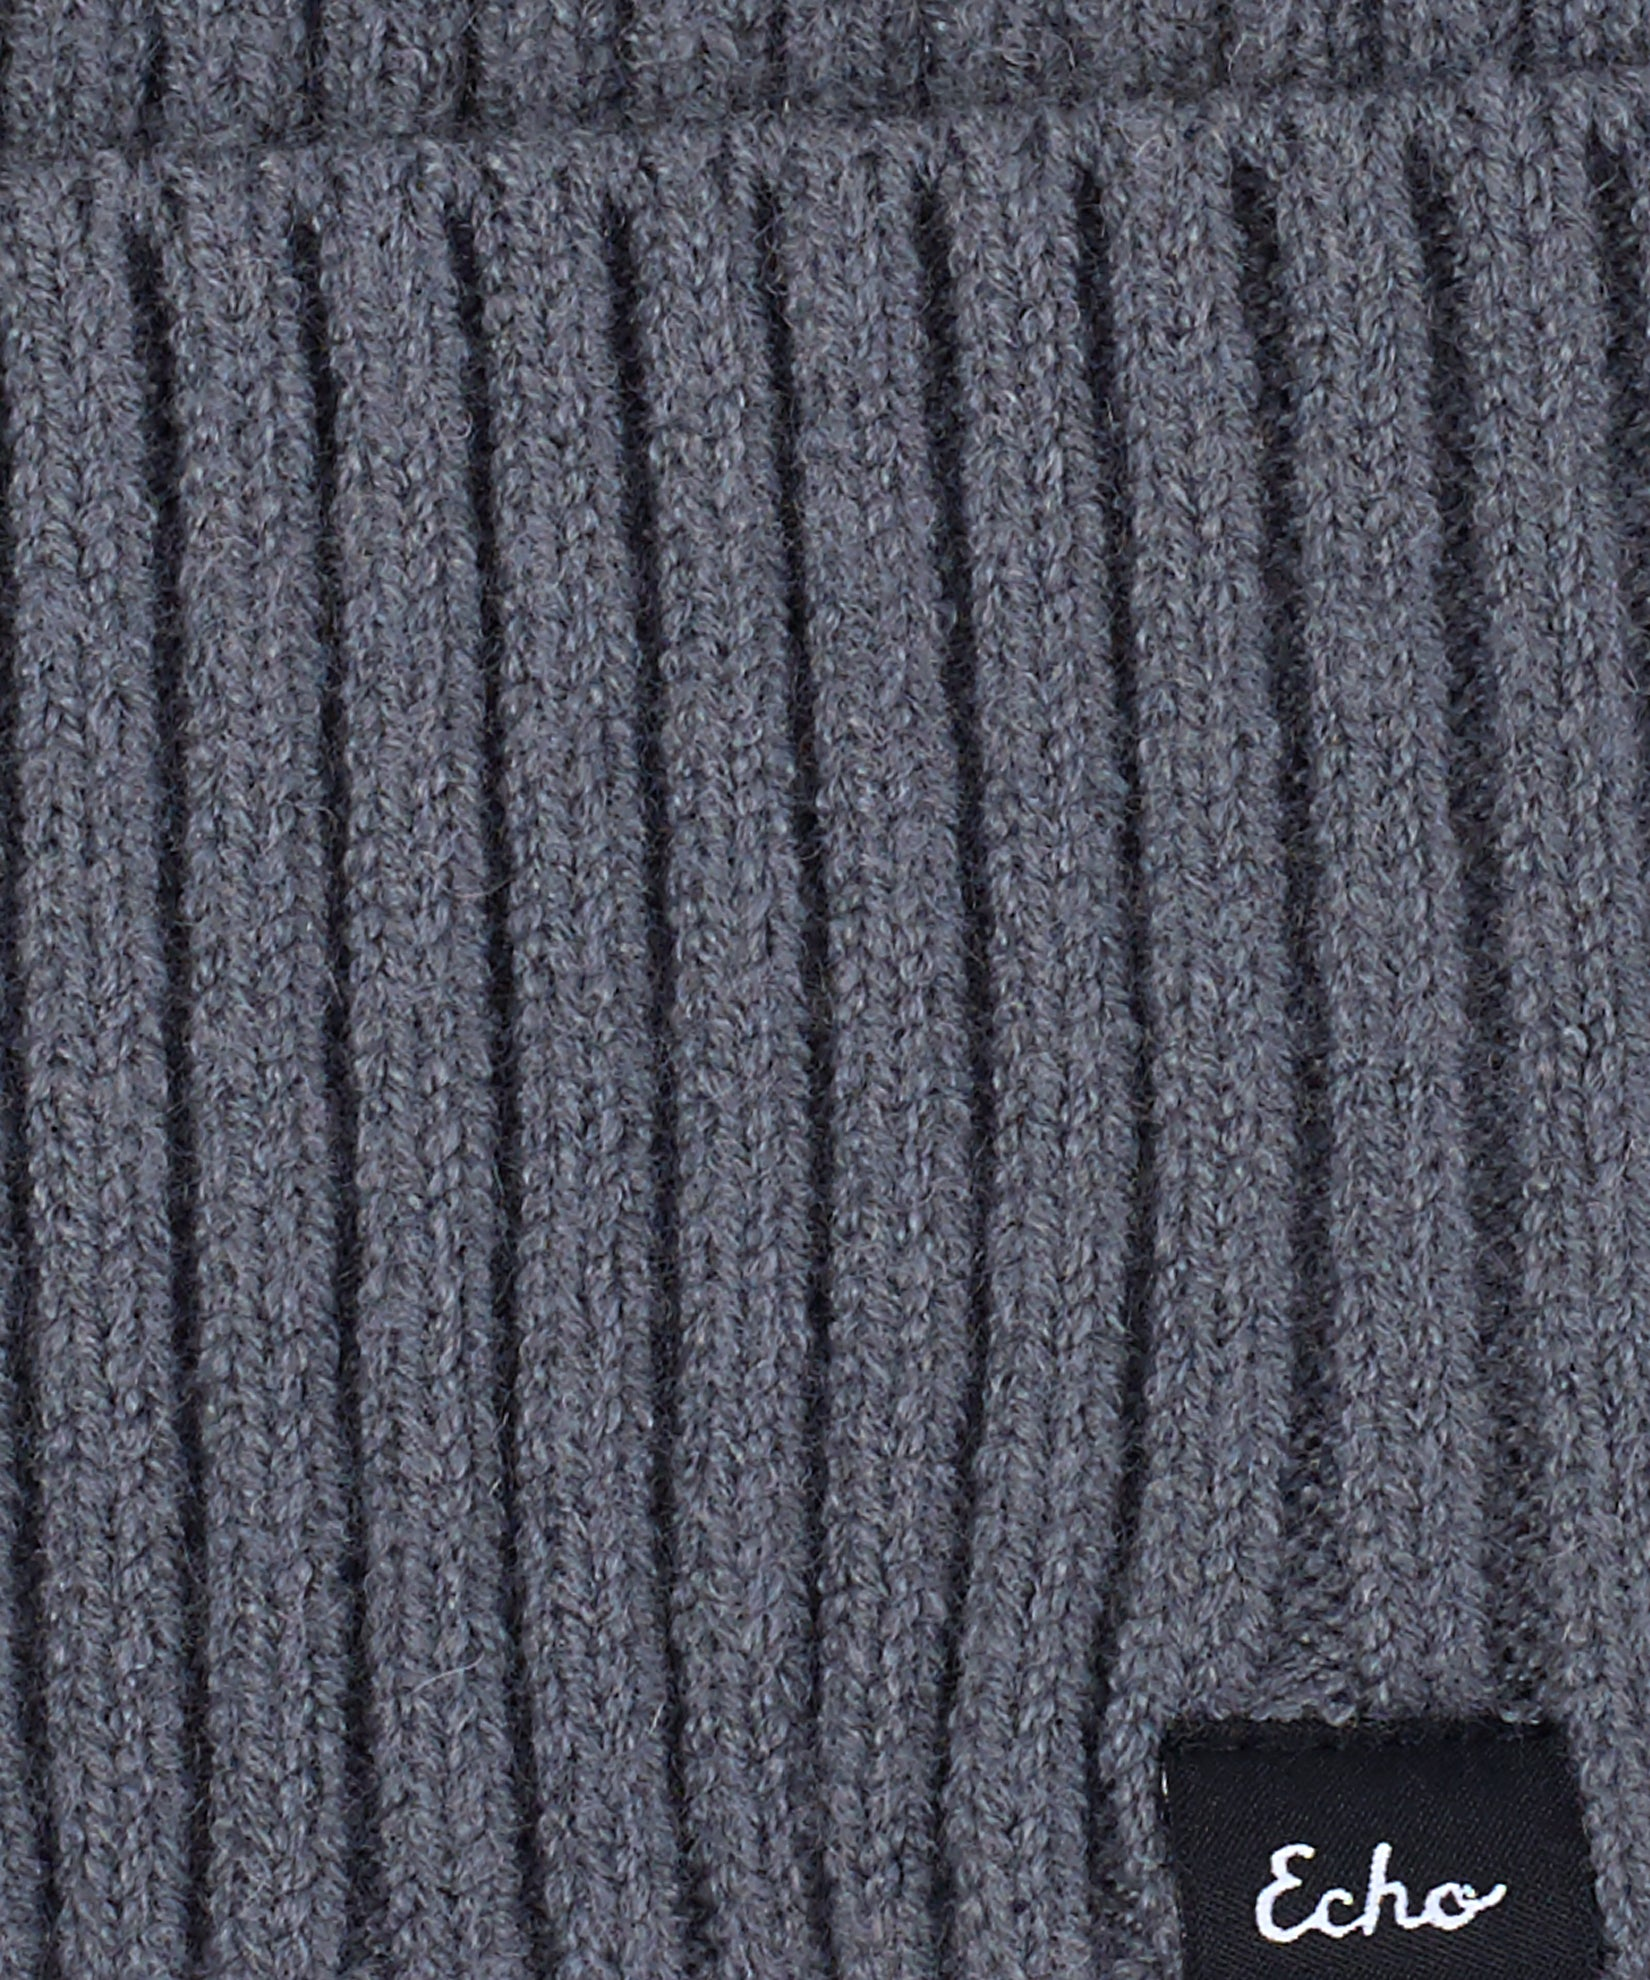 Echo Charcoal - Active Stretch Ribbed Cuff Beanie